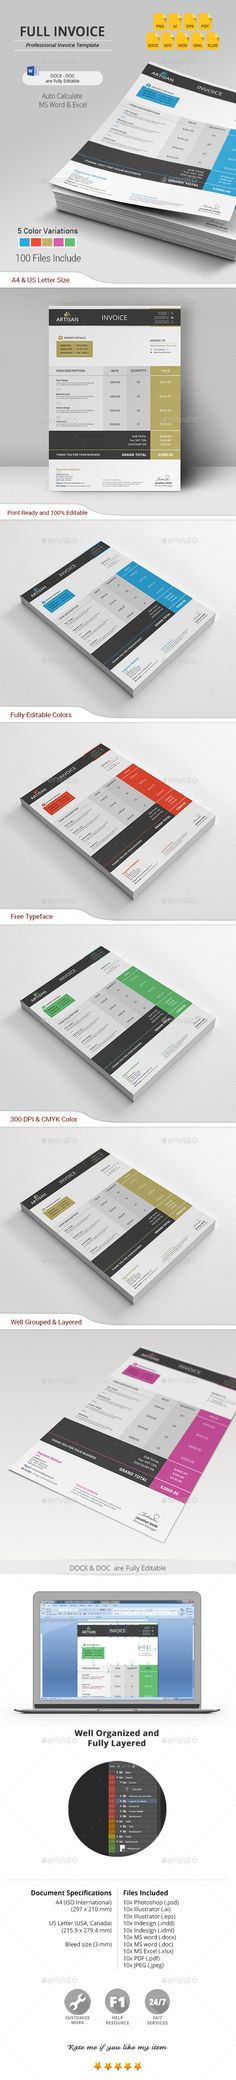 #Invoice - #Proposals & Invoices Stationery Download here: https://graphicriver.net/item/invoice/19554591?ref=alena994